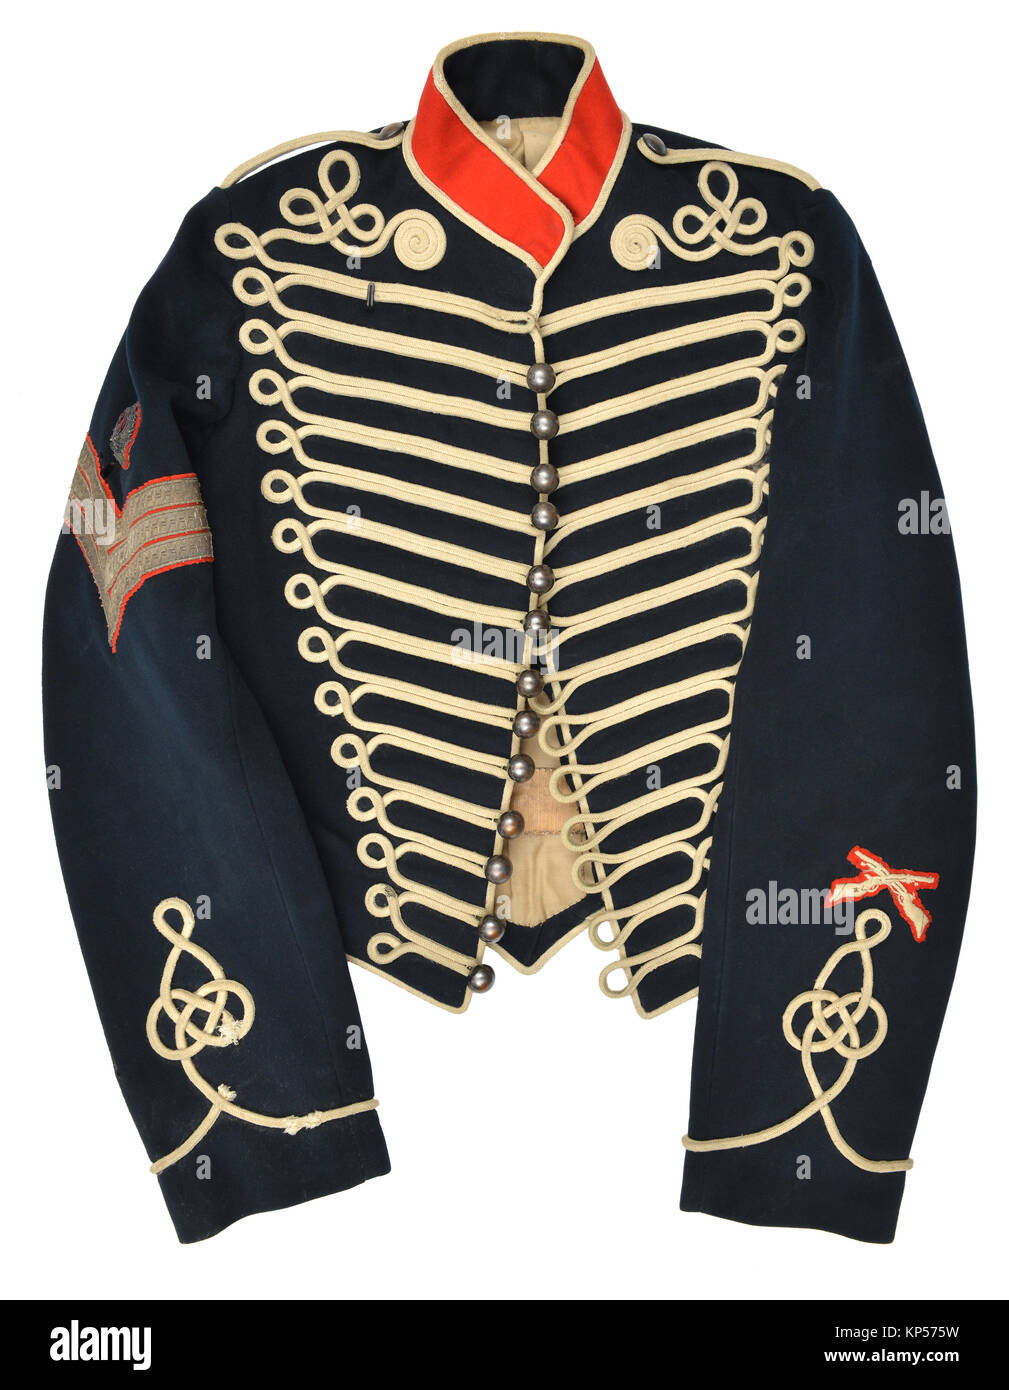 Sergeant's tunic of the Royal Horse Artillery - Stock Image